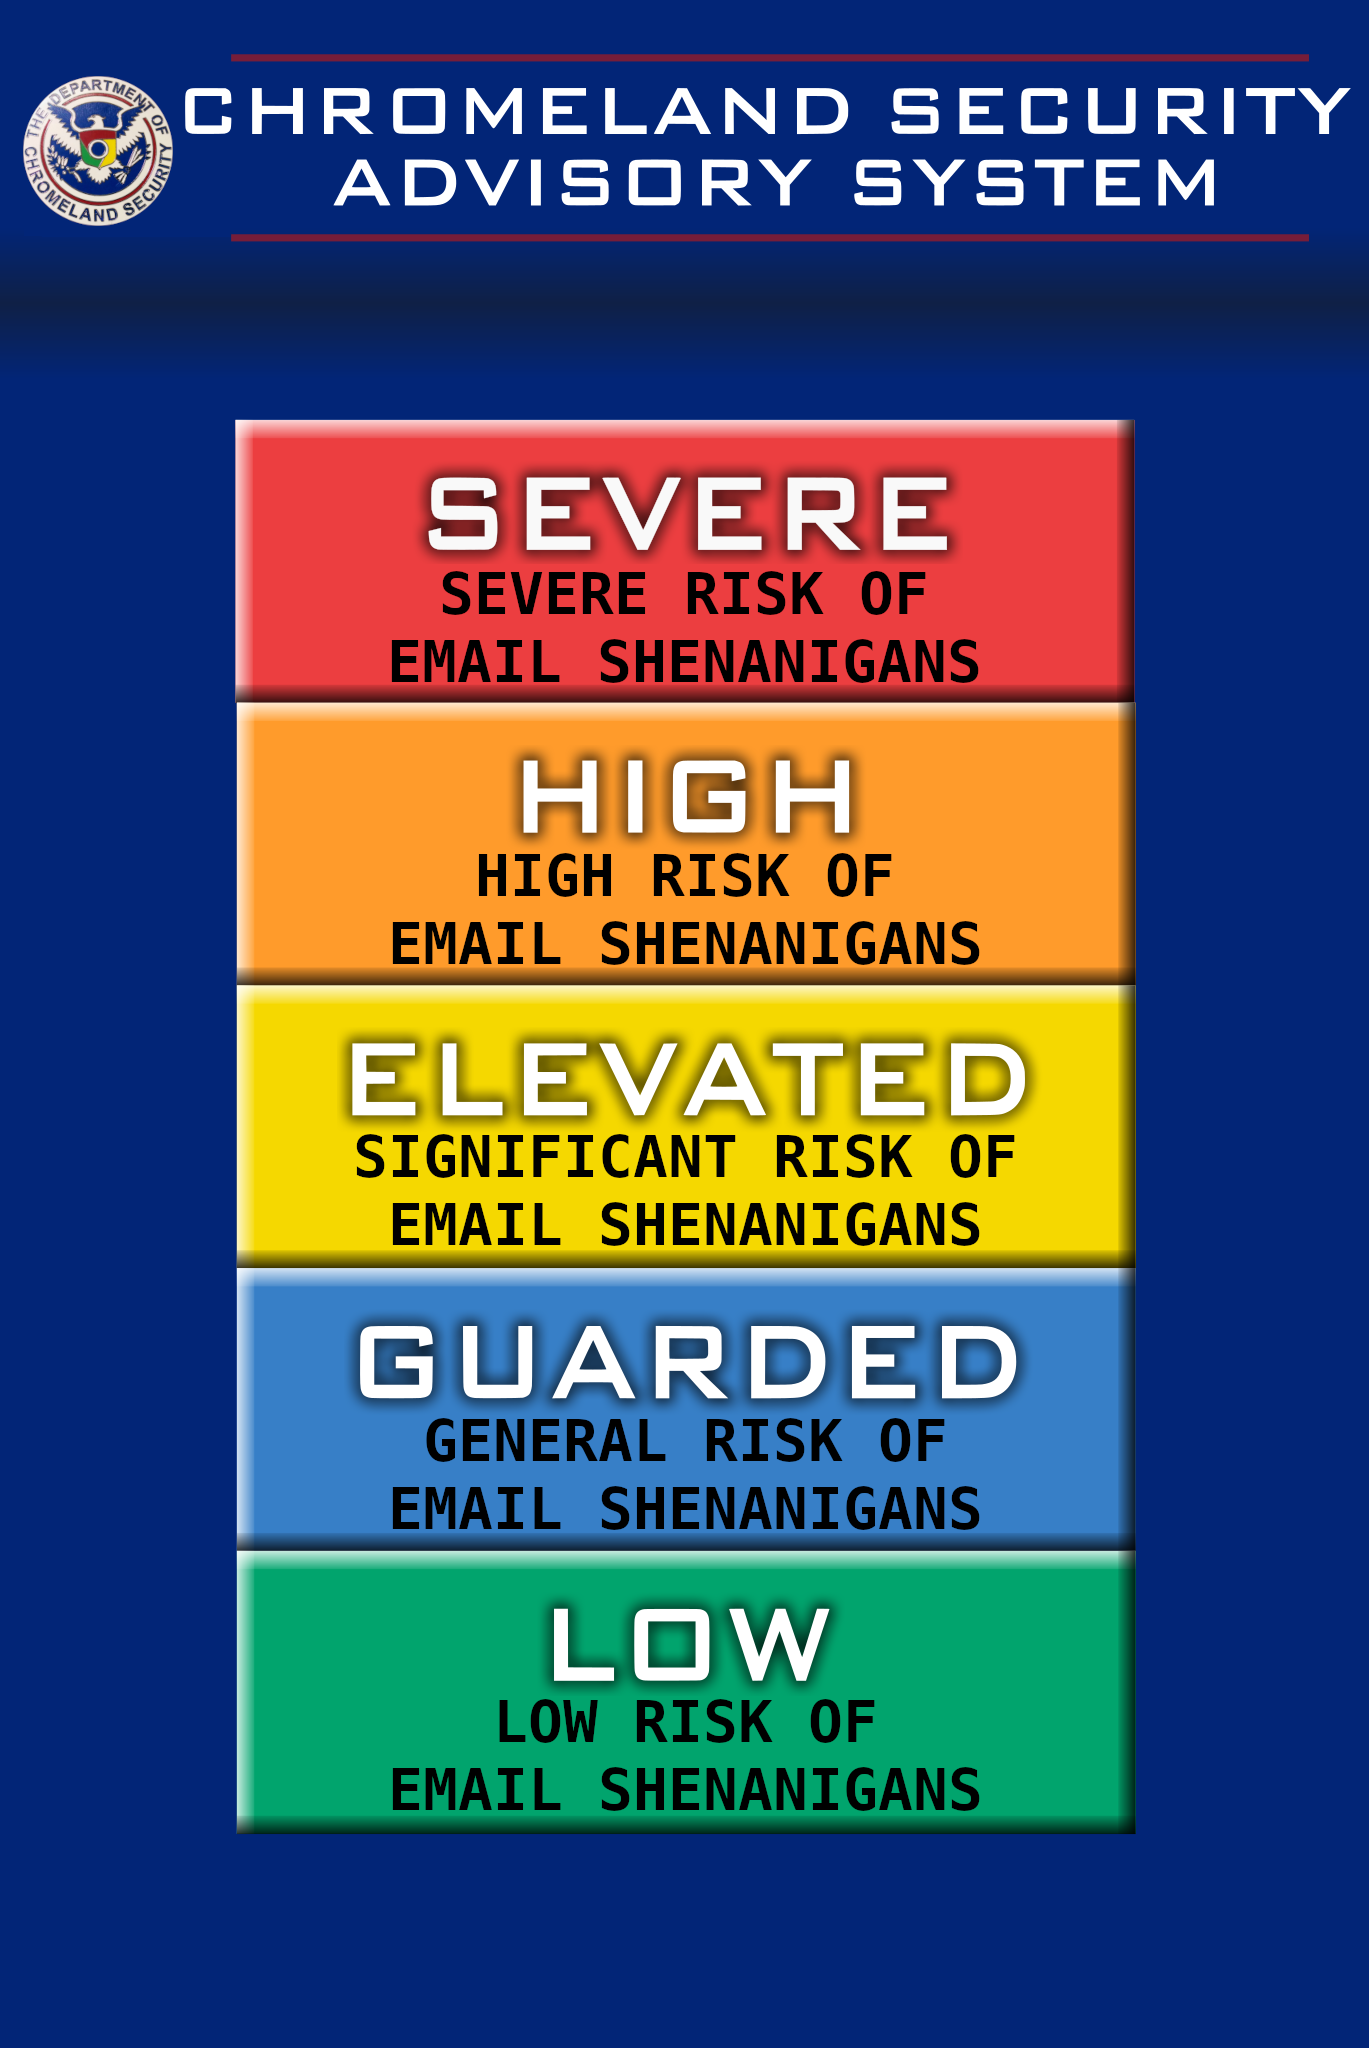 The Department of Chromeland Security Advisory System chart